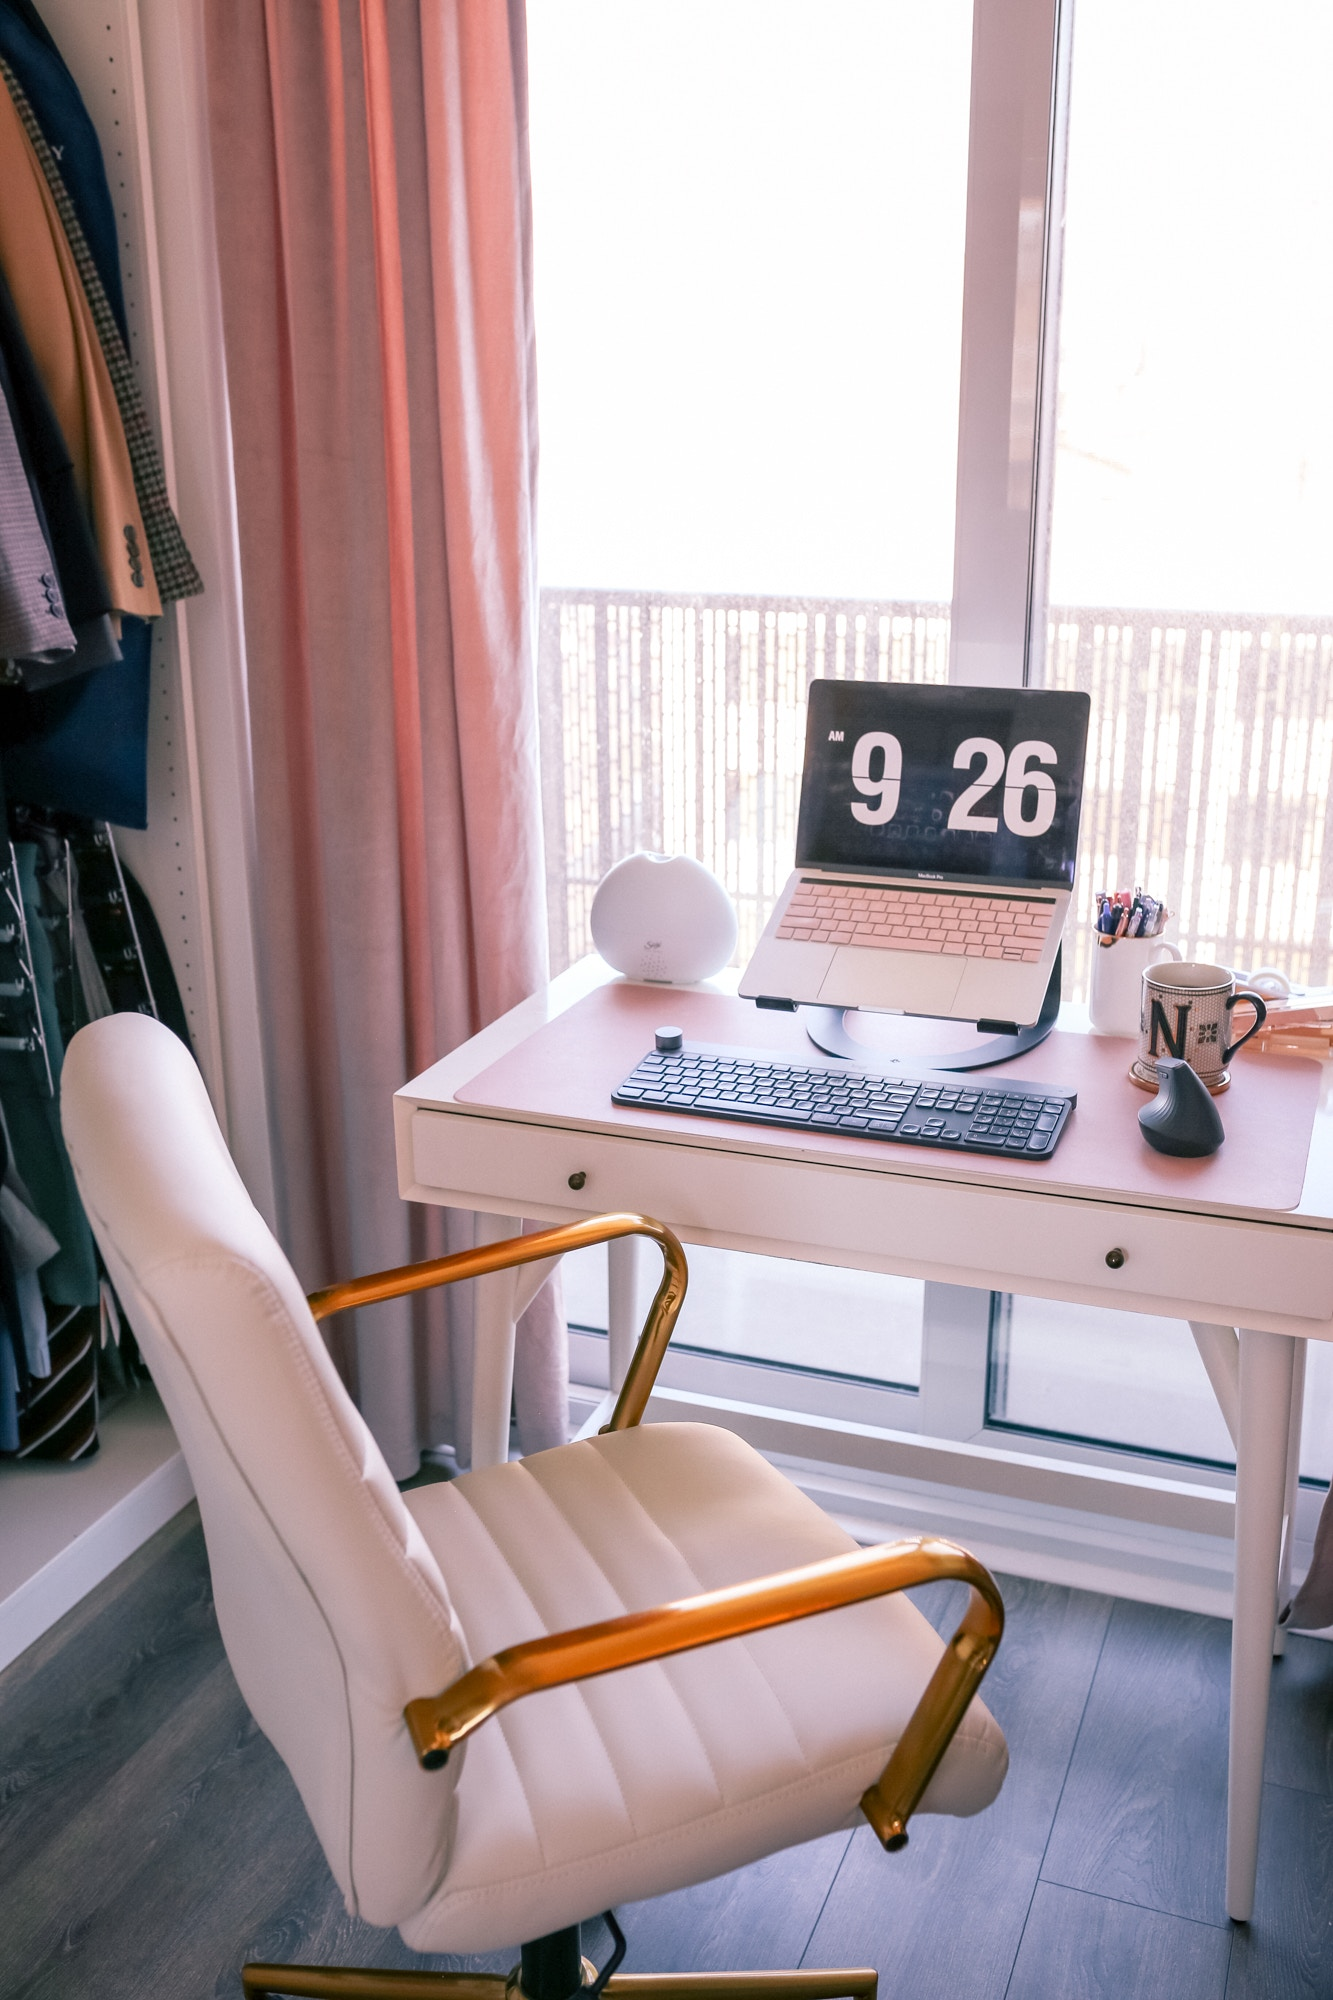 If you're working from home during self-isolation make sure to have a clean desk setup with a comfortable desk chair, sturdy desk and a laptop stand to be ergonomic.